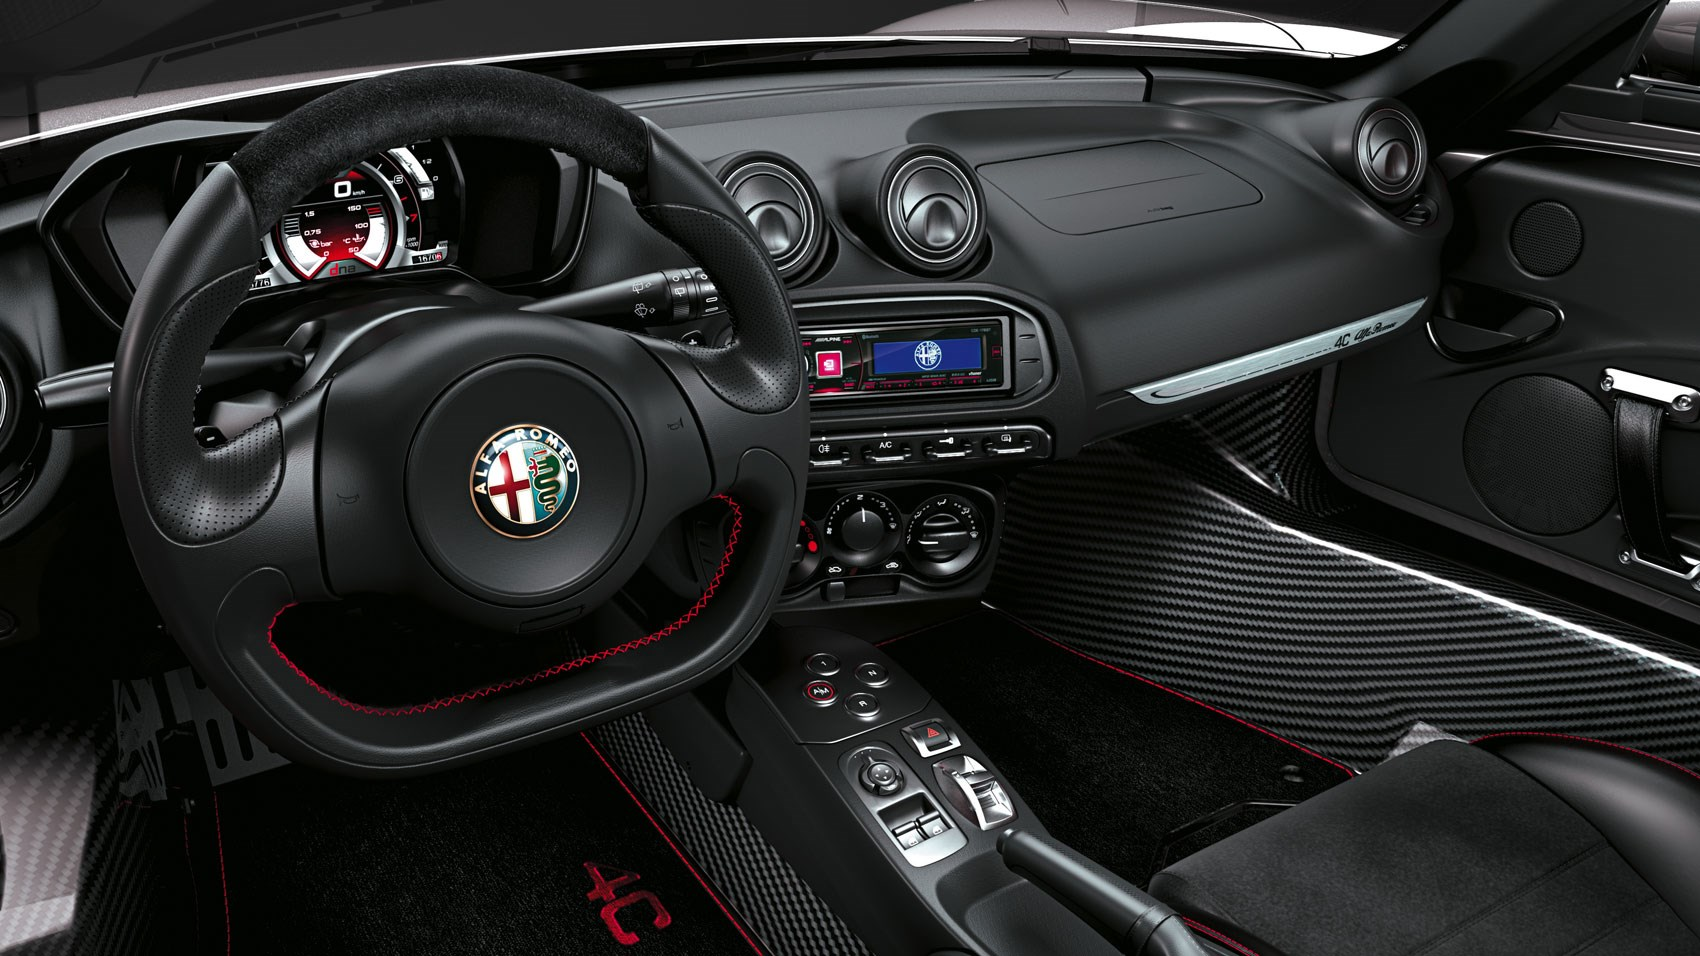 Alfa romeo spider quadrifoglio for sale uk 10